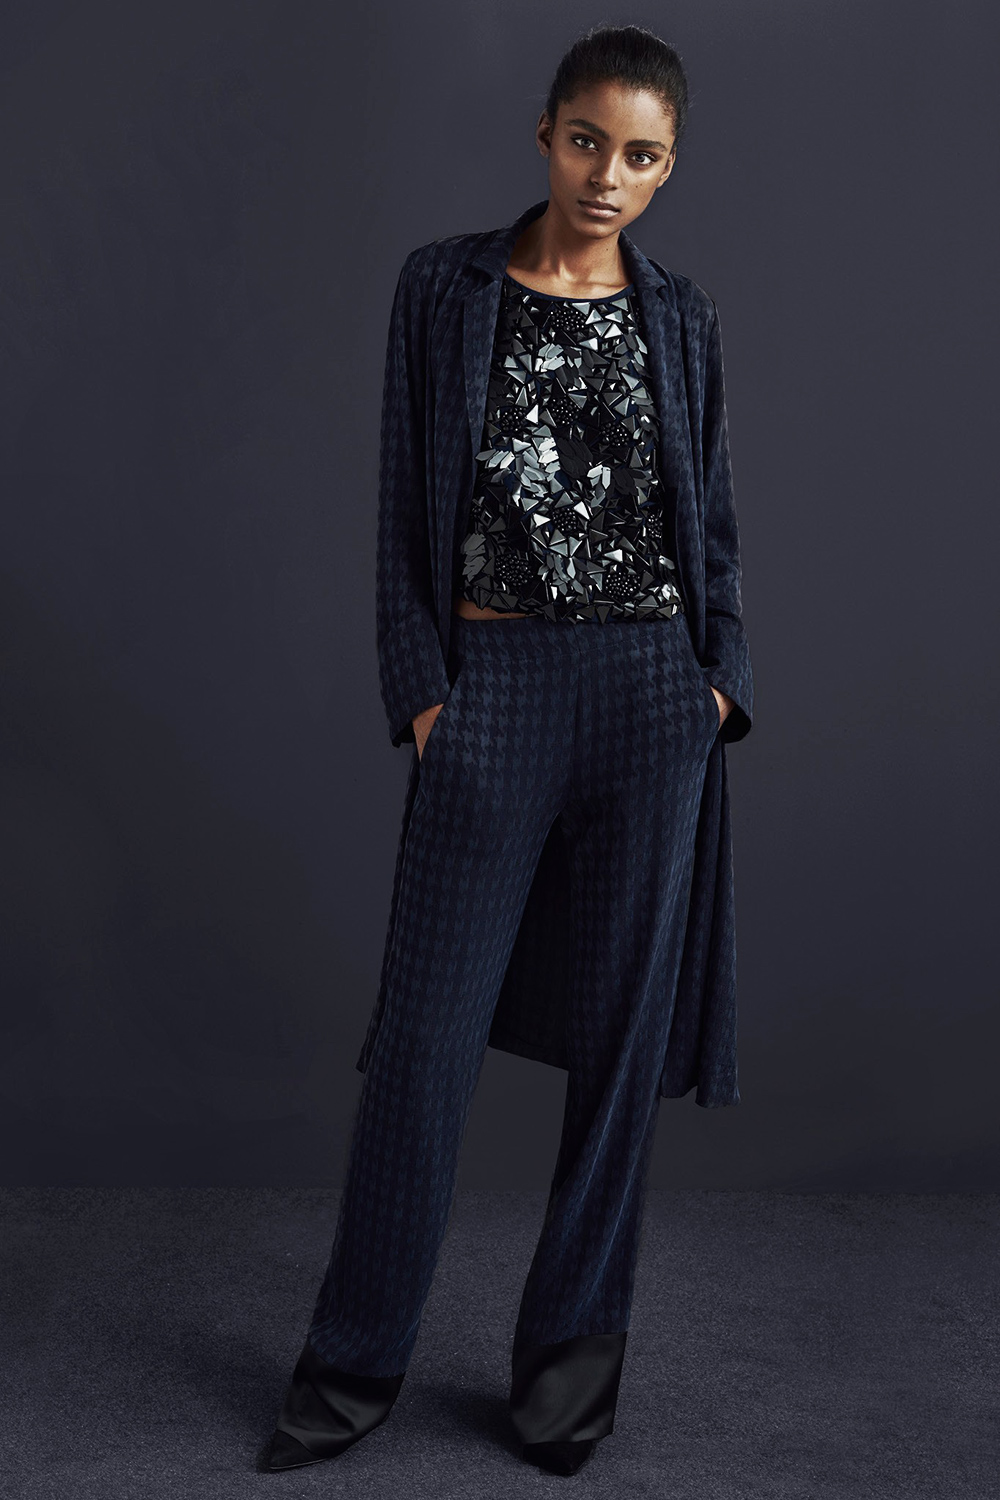 Mango Premium Winter 2015 Collection - Holiday Season Dressing Classic Minimalist Trend